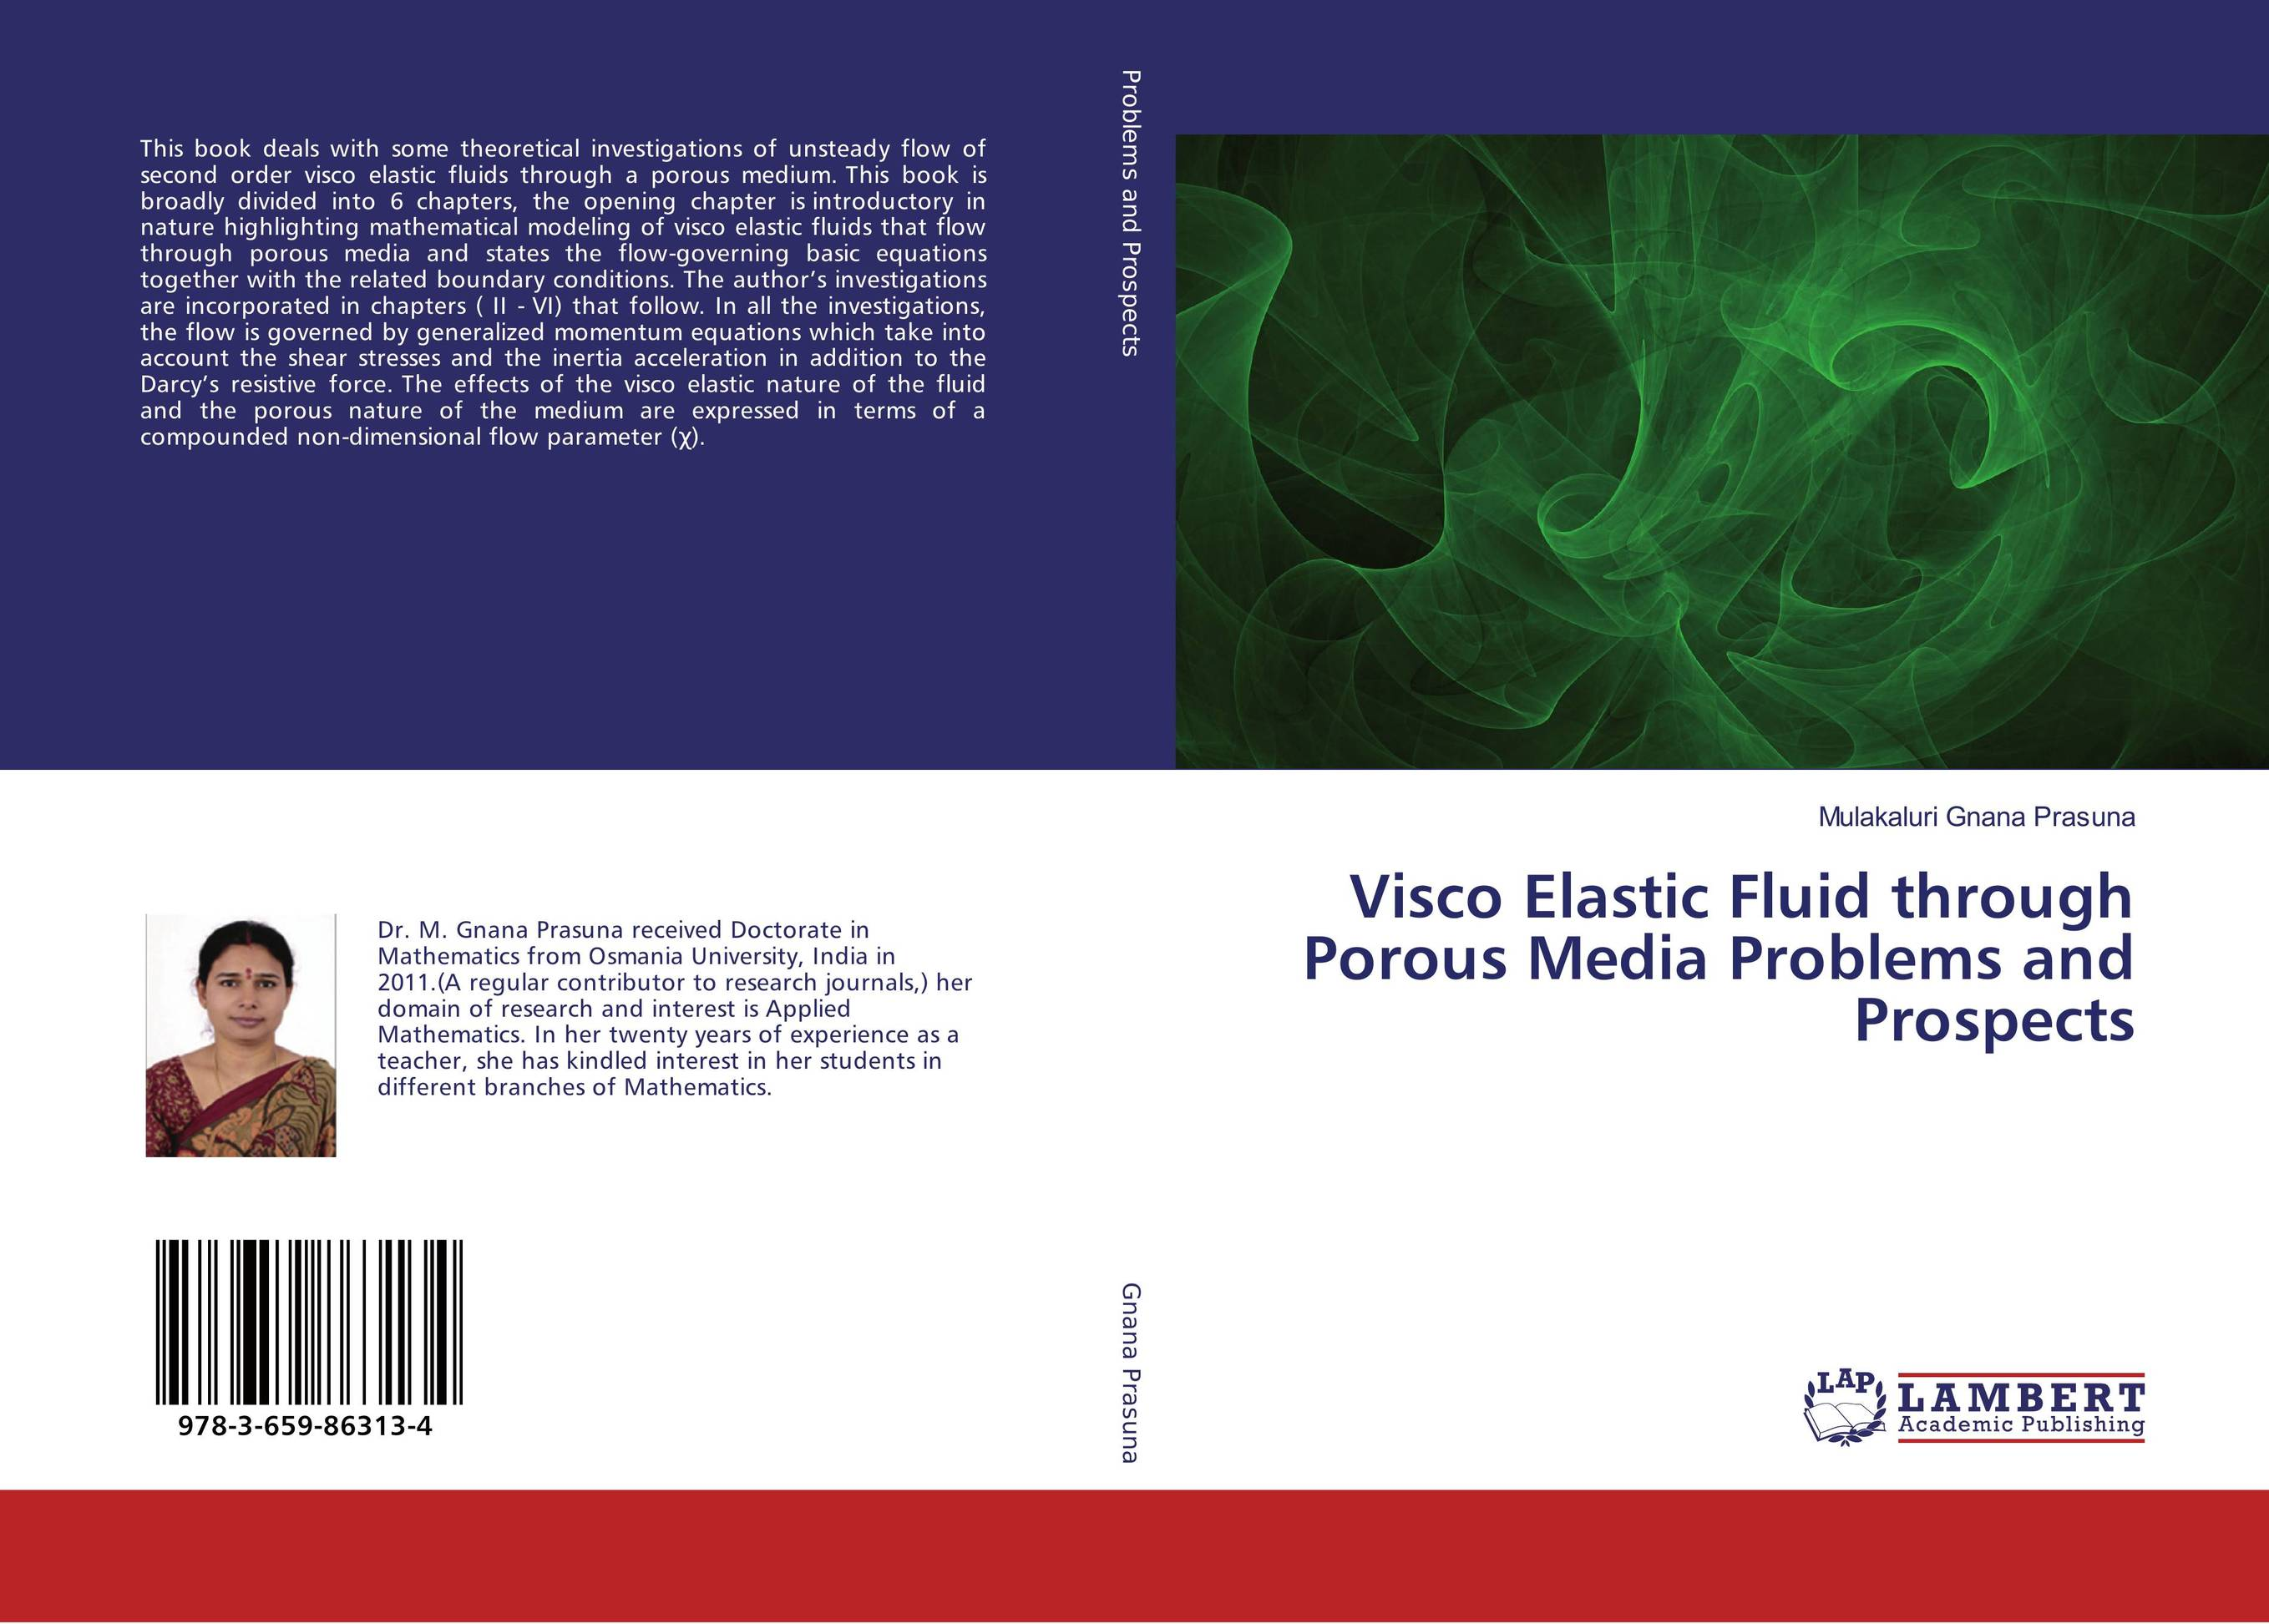 Visco Elastic Fluid through Porous Media Problems and Prospects michael luntley wittgenstein opening investigations